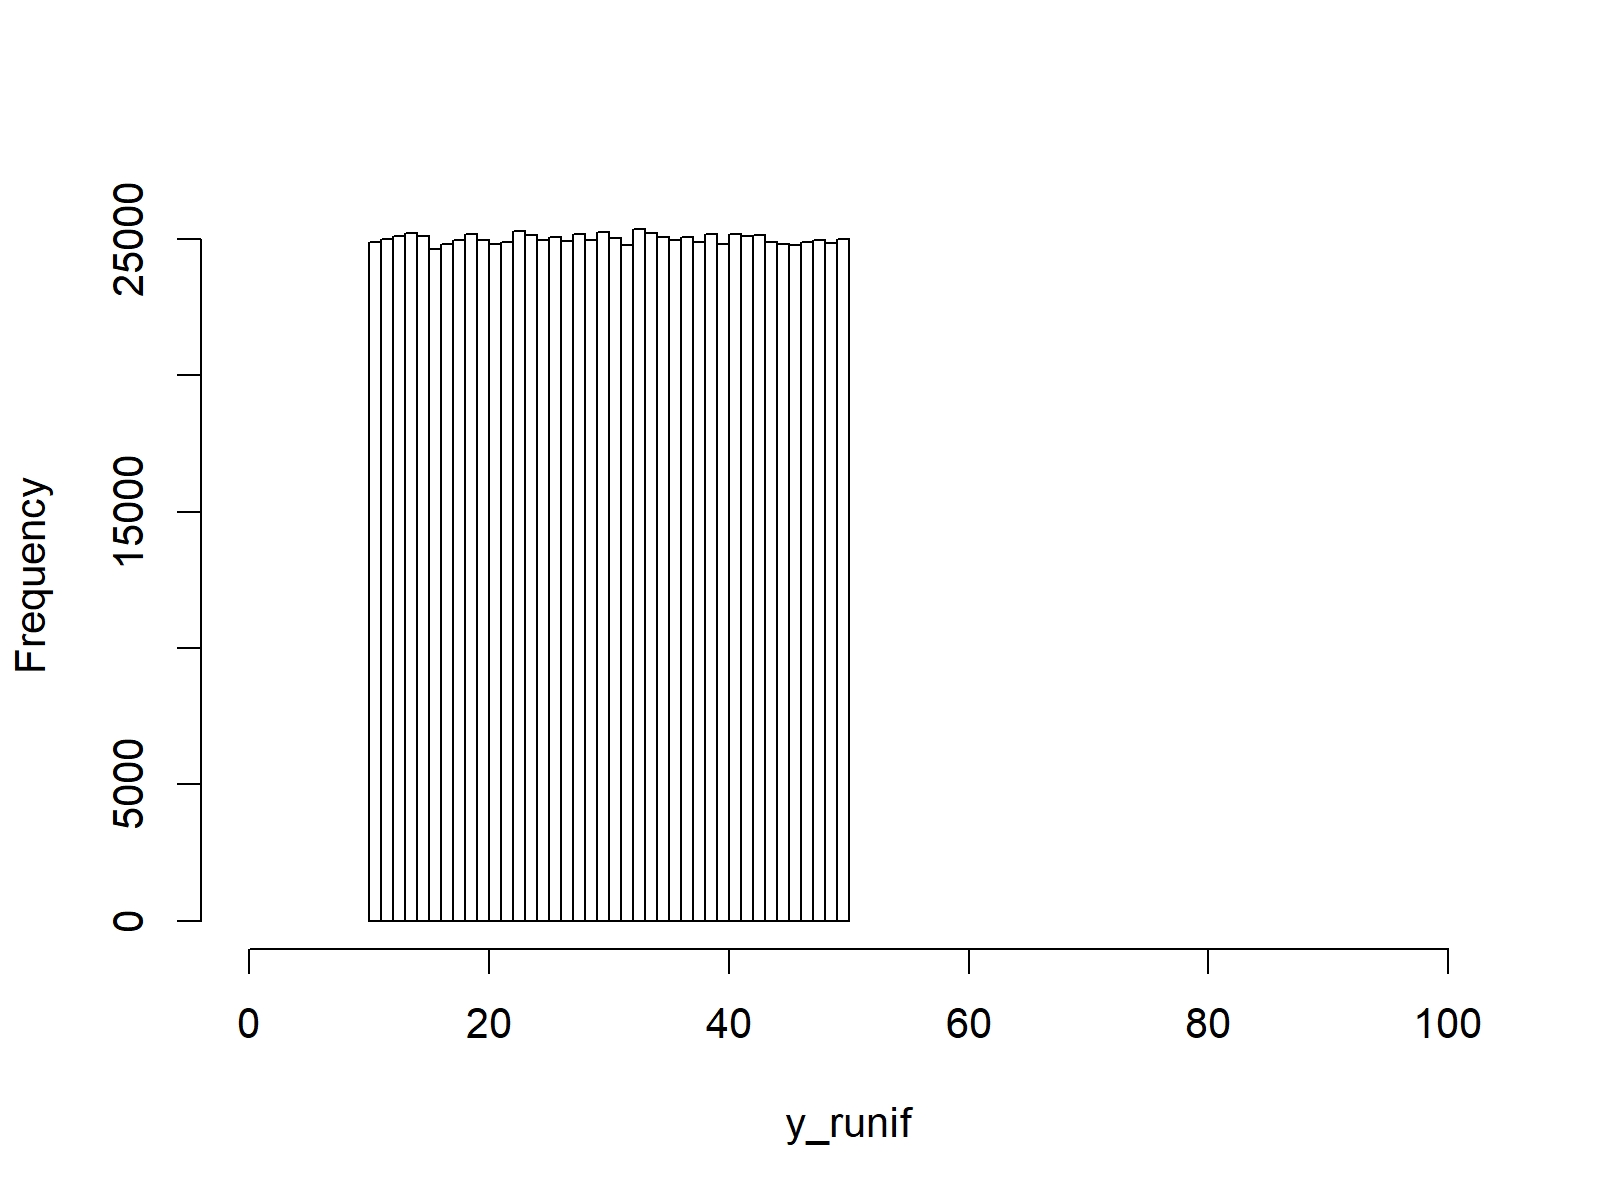 histogram of uniformly distributed random values in R